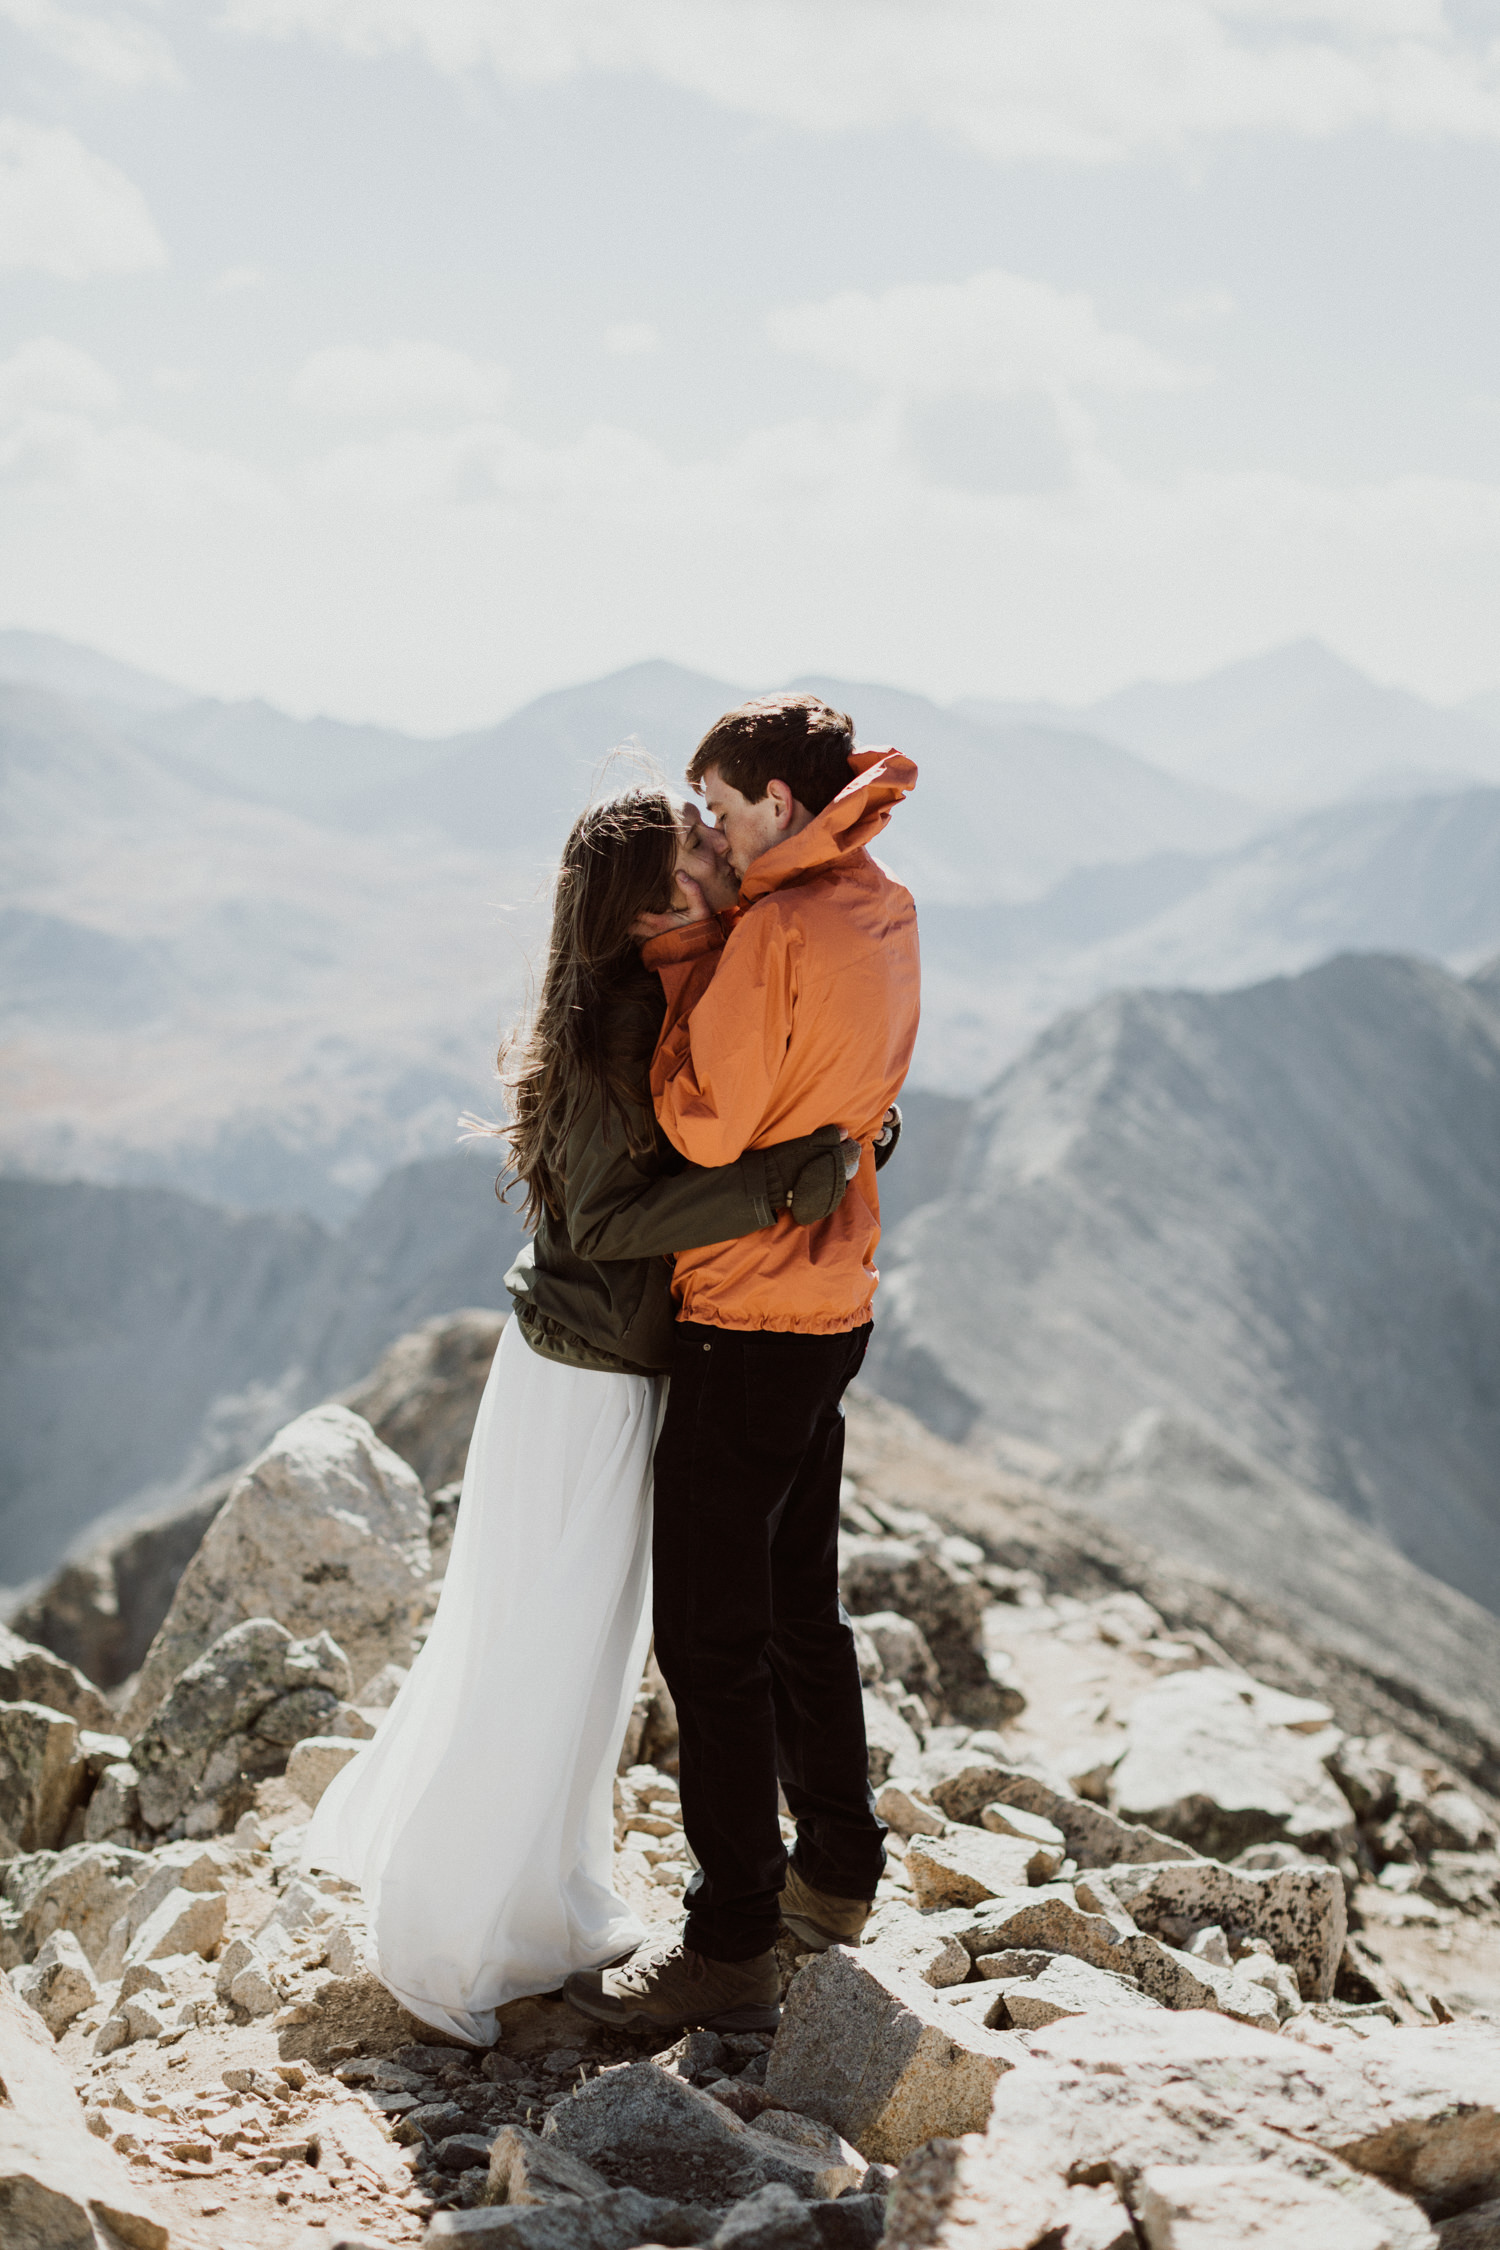 fourteener-adventure-wedding-photographer-90.jpg